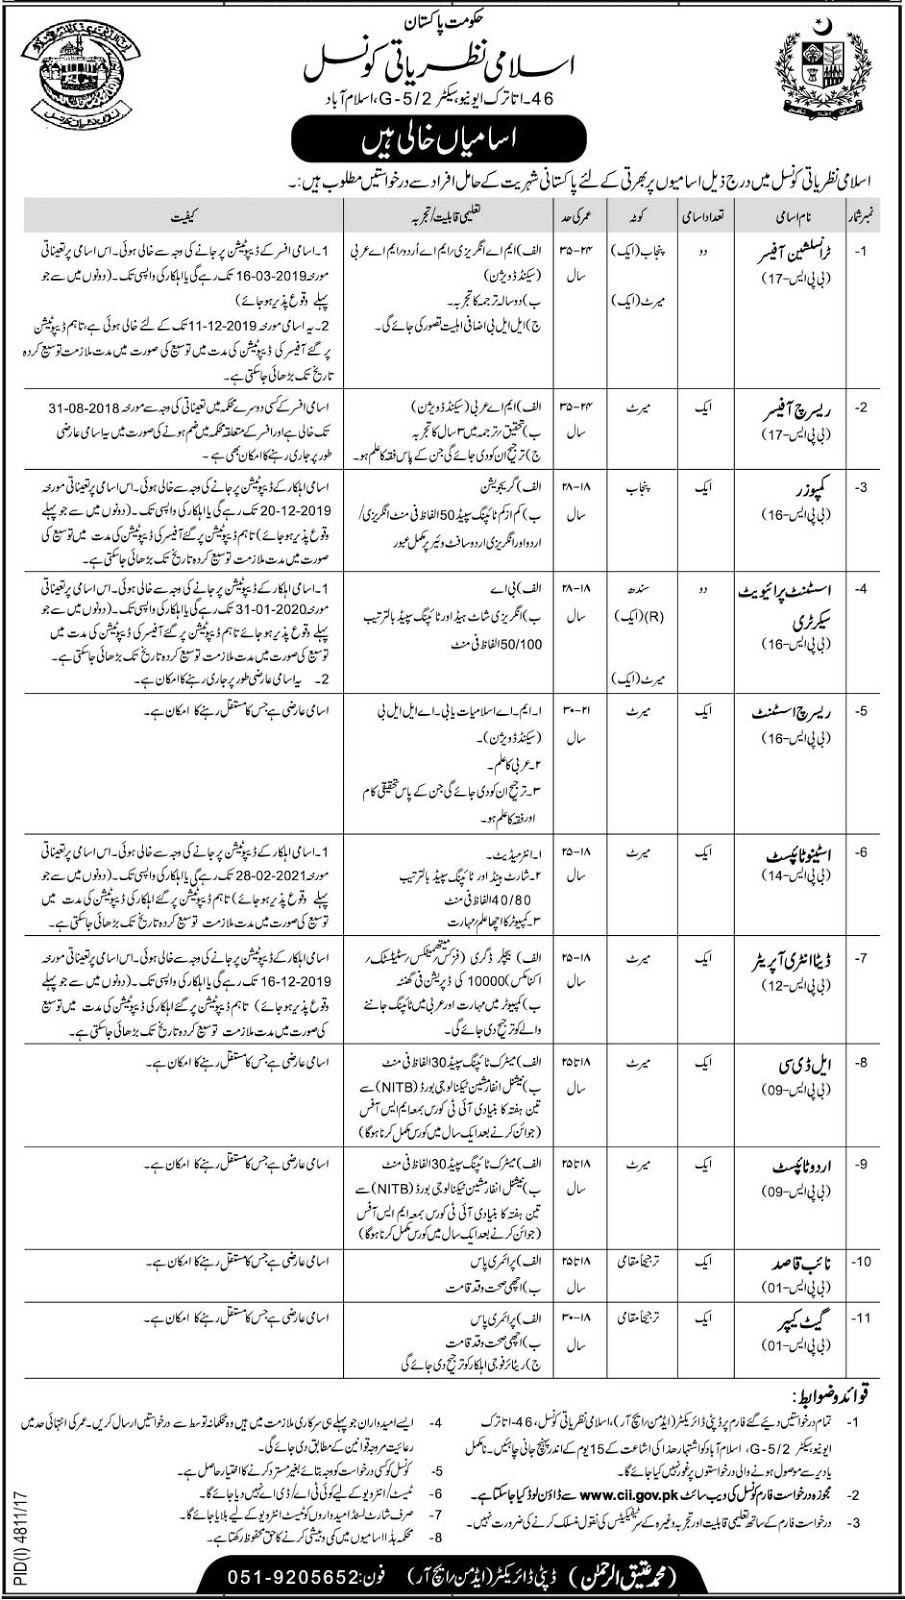 Jobs In Council Of Islamic Ideology Govt Of Pakistan Islamabad 2018 for 13 Vacancies